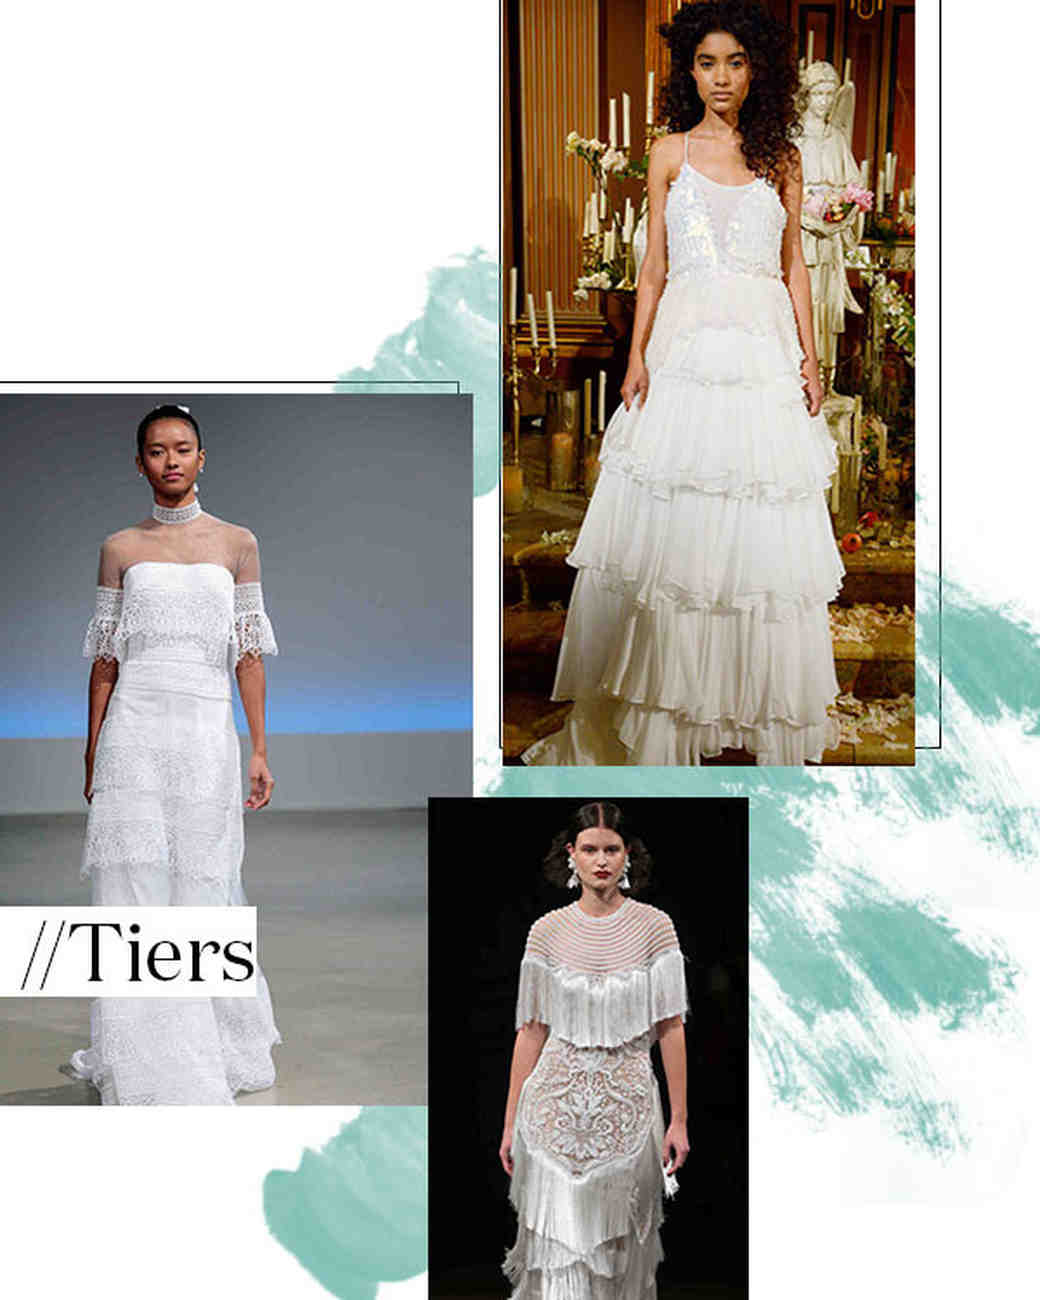 Fall 2017 Wedding Dress Trend: Tiers